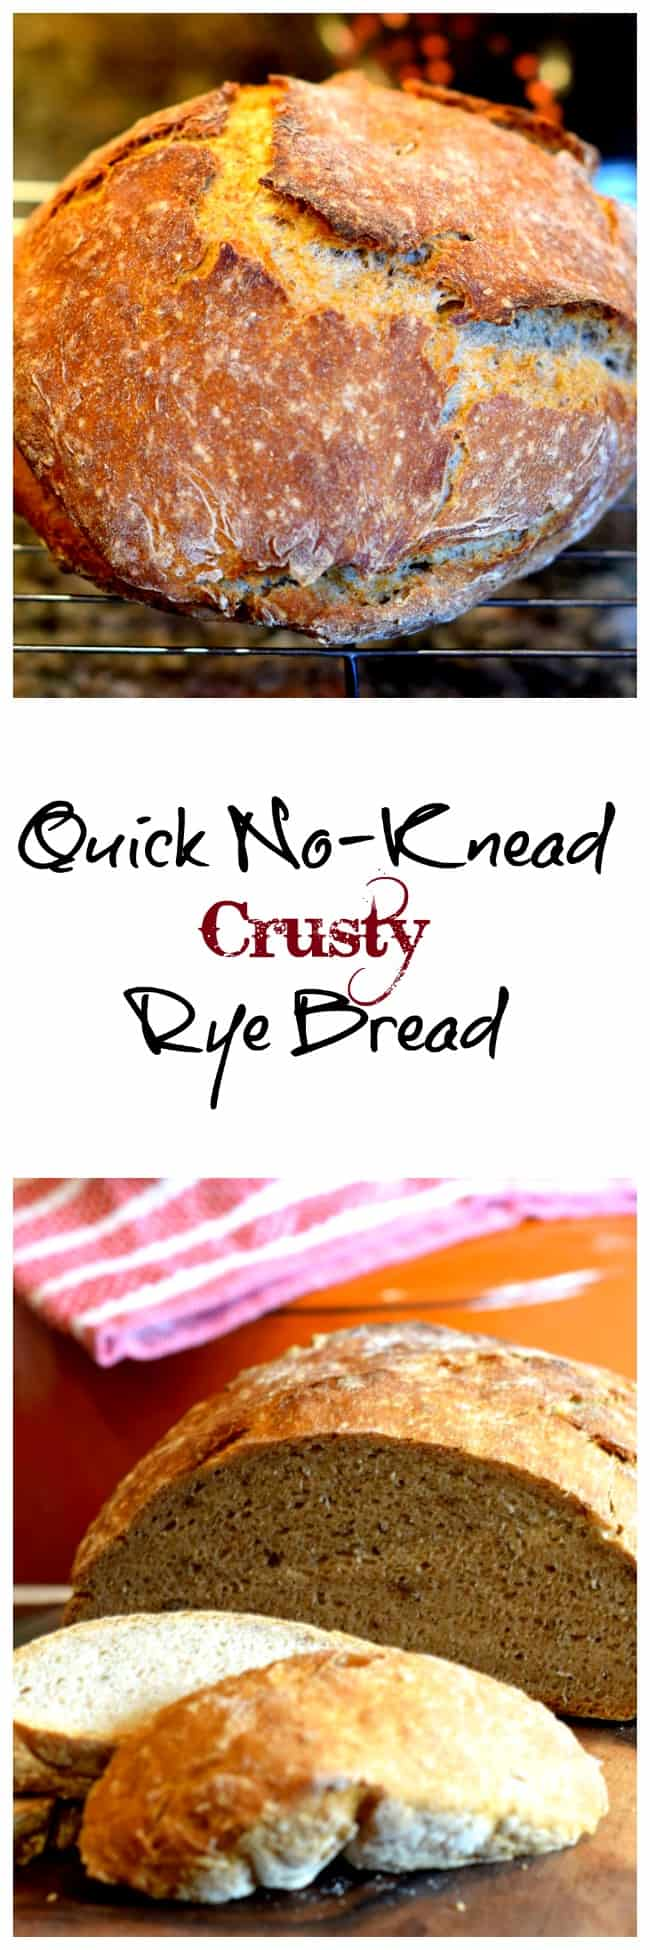 Quick No-Knead Crusty Rye Bread. So simple to make, no kneading and you don't have to wait 18 hours